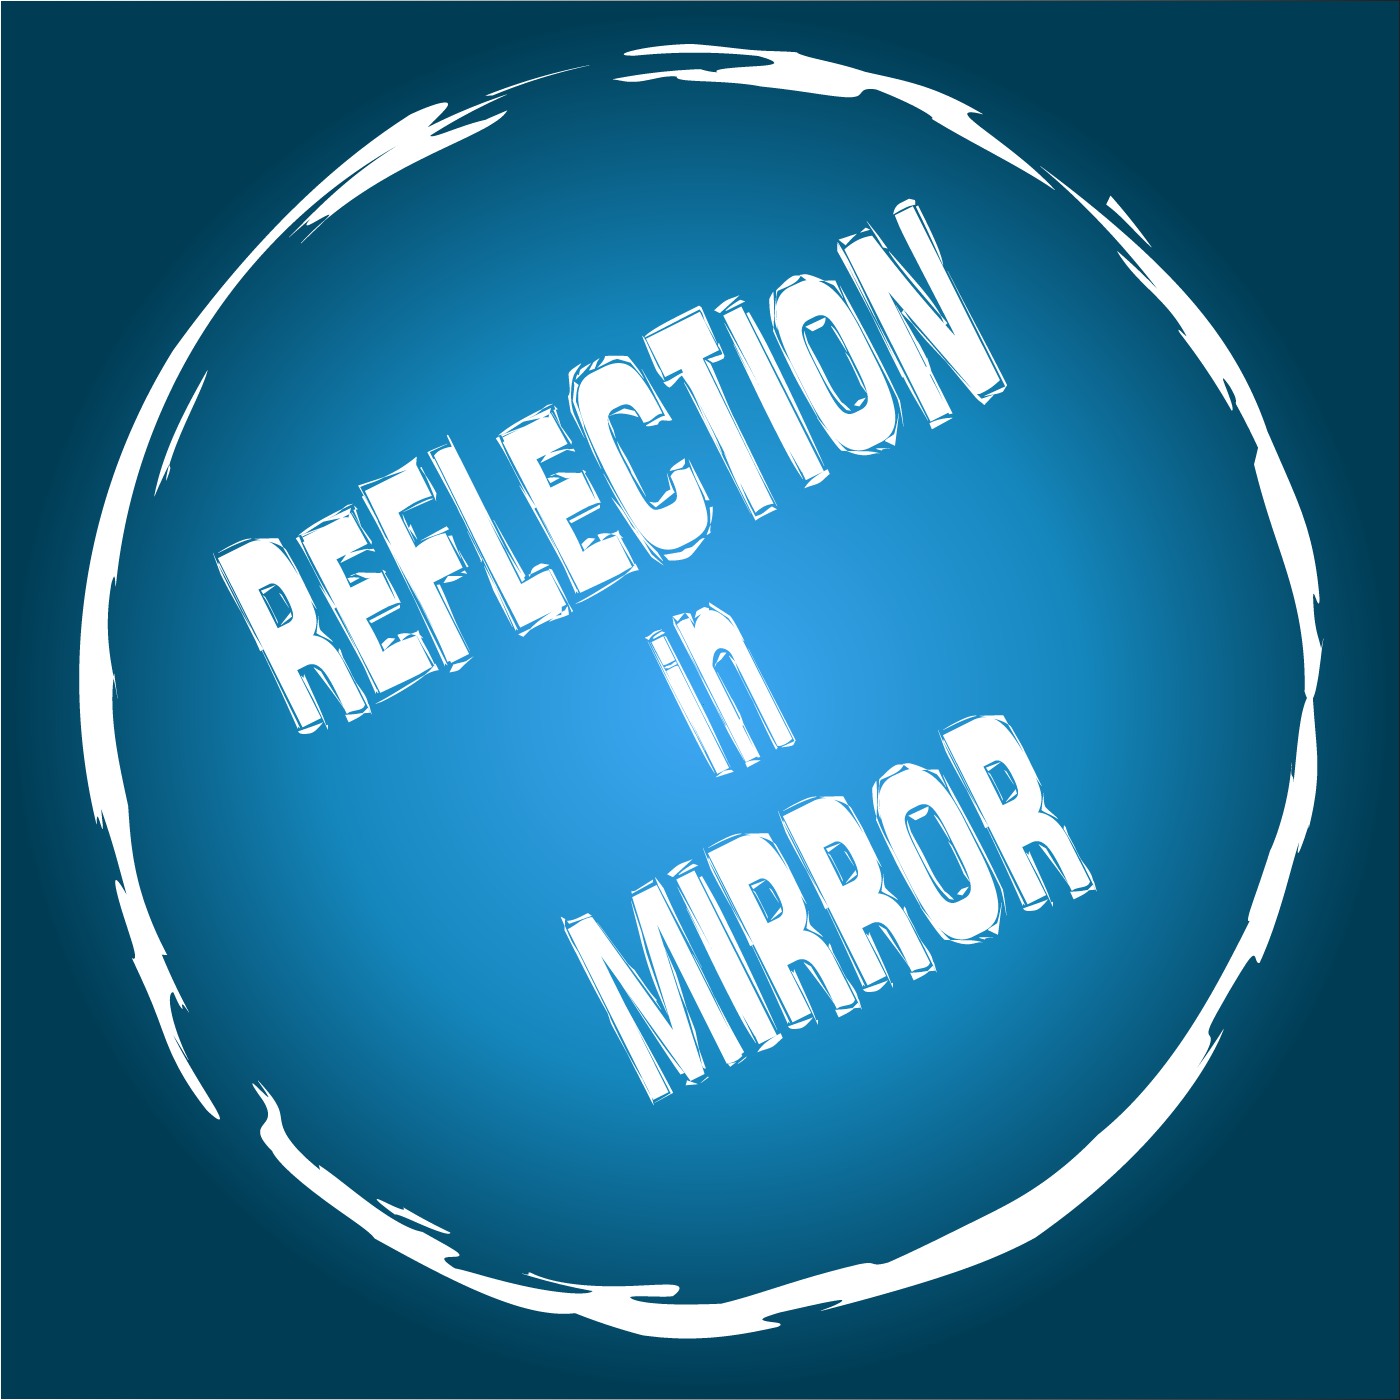 Reflection in Mirror show image